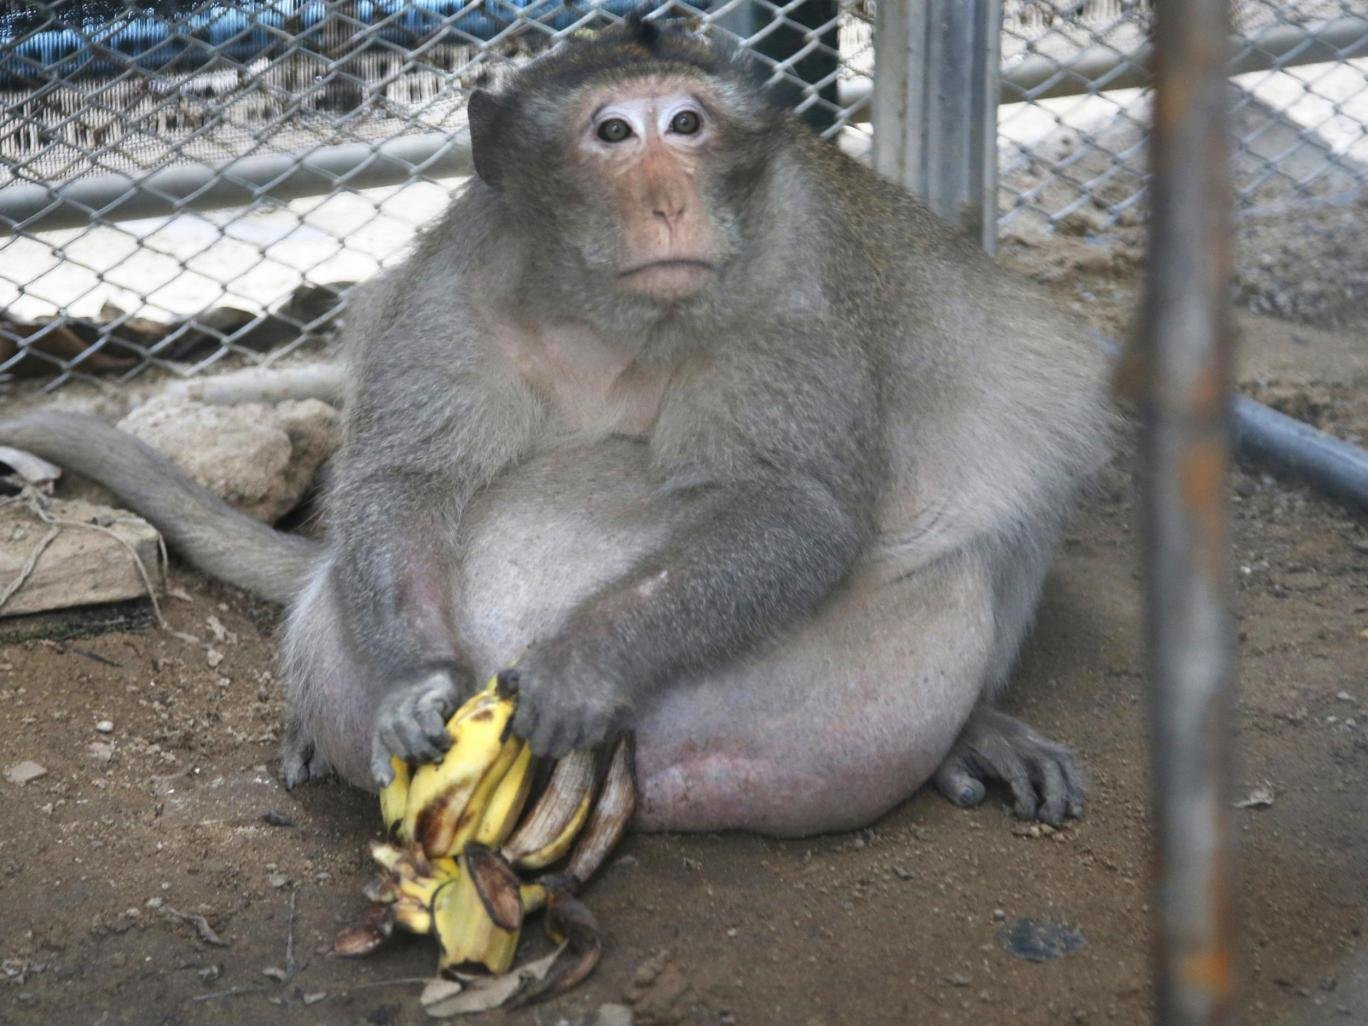 Uncle Fat, the overweight macaque. Photo courtesy Sakchai Lalit/AP